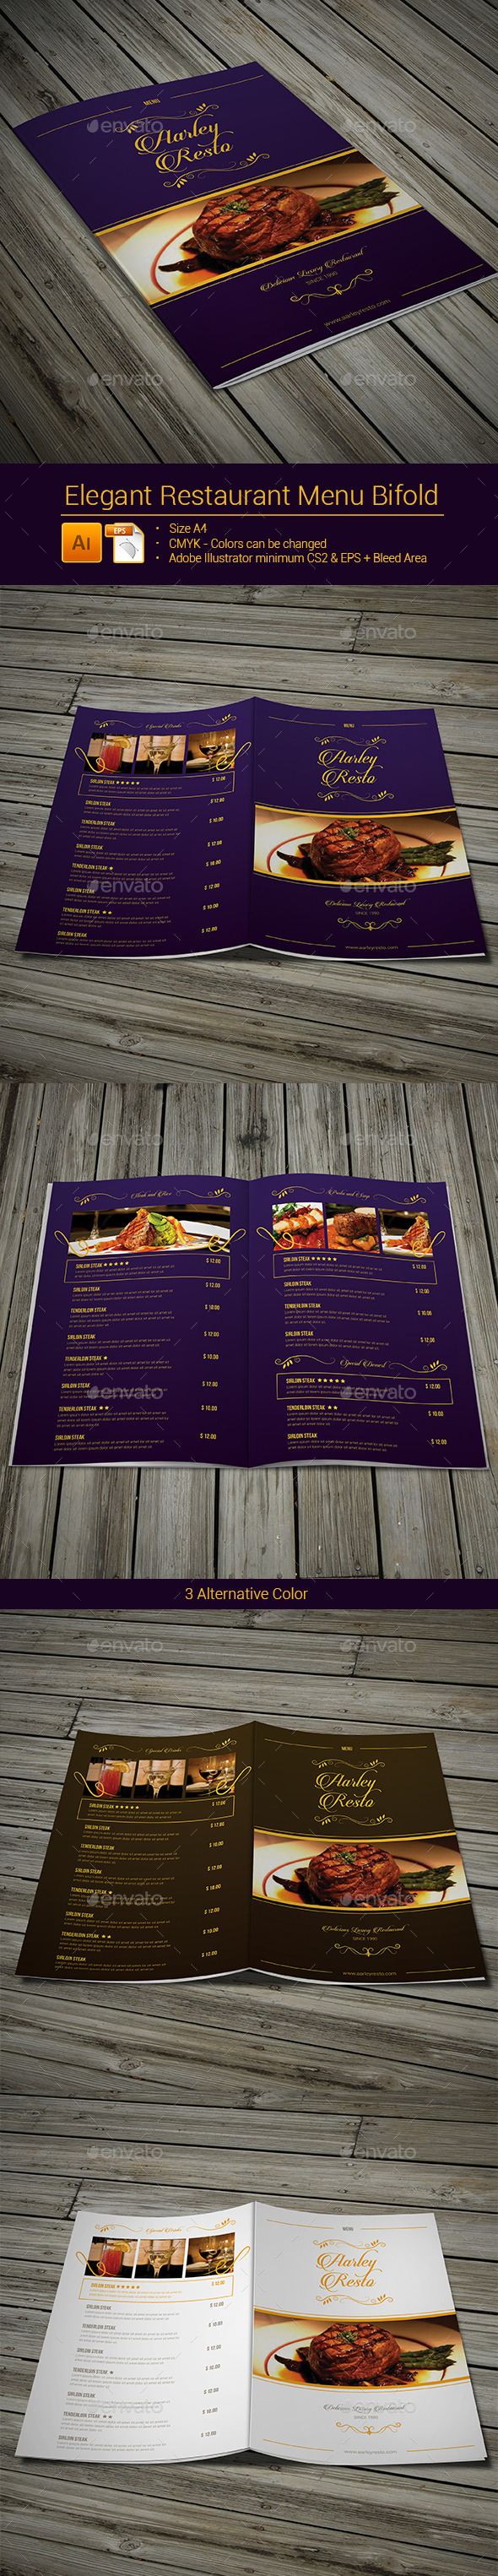 GraphicRiver Elegant Restaurant Menu Bifold 9149979